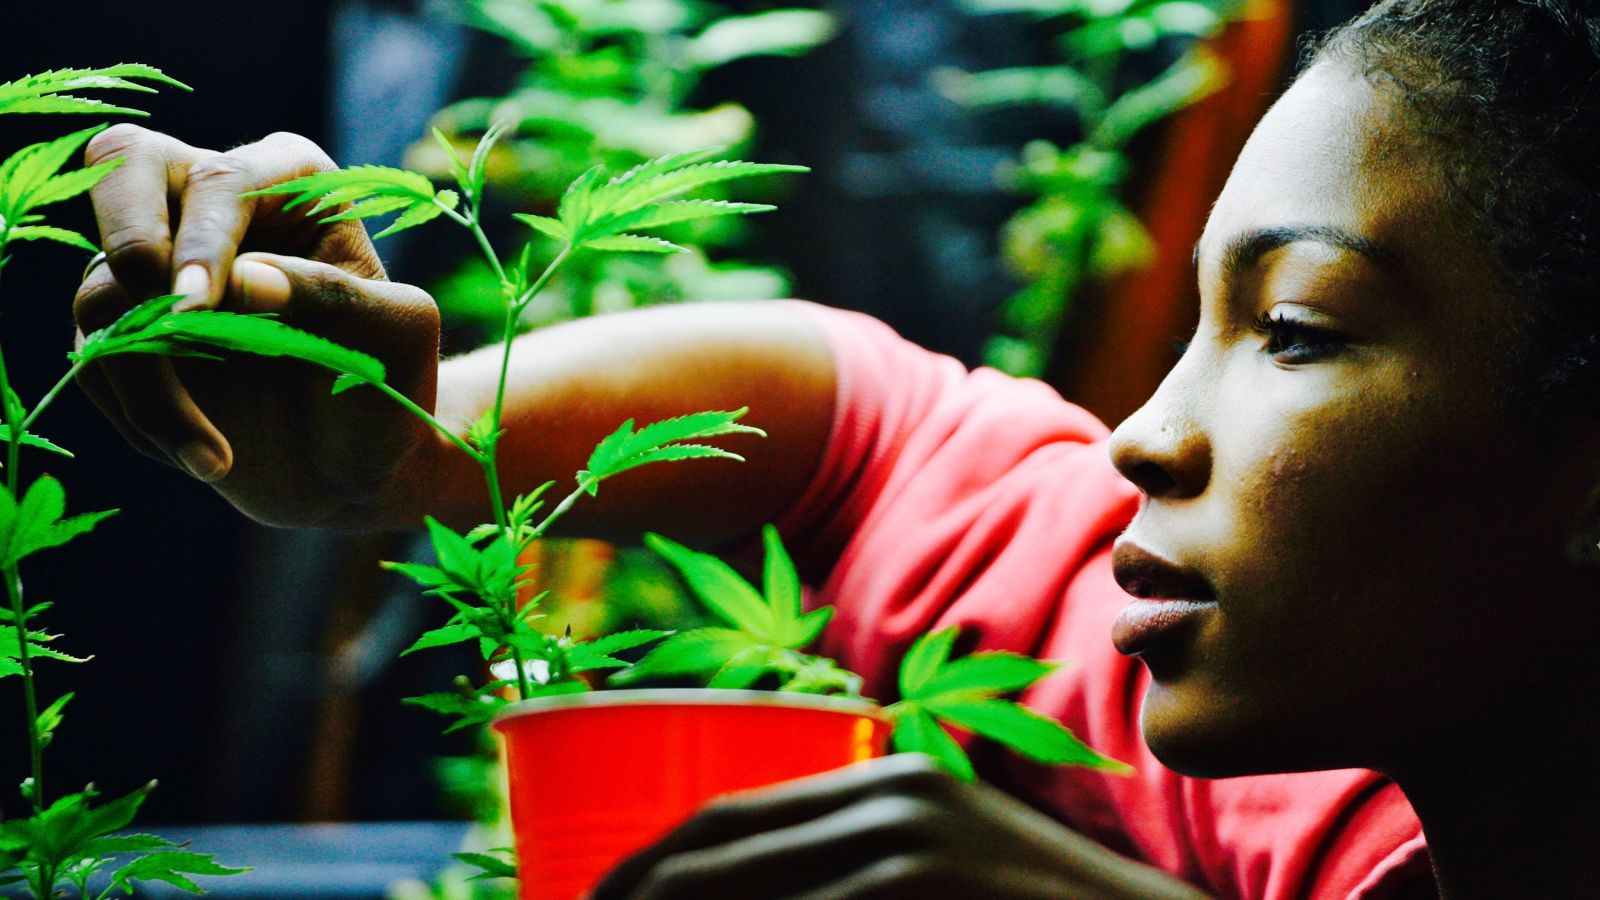 Photo:Tending cannabis plants is an ancient traditions for women. (Reuters/Jonathan Alcorn)